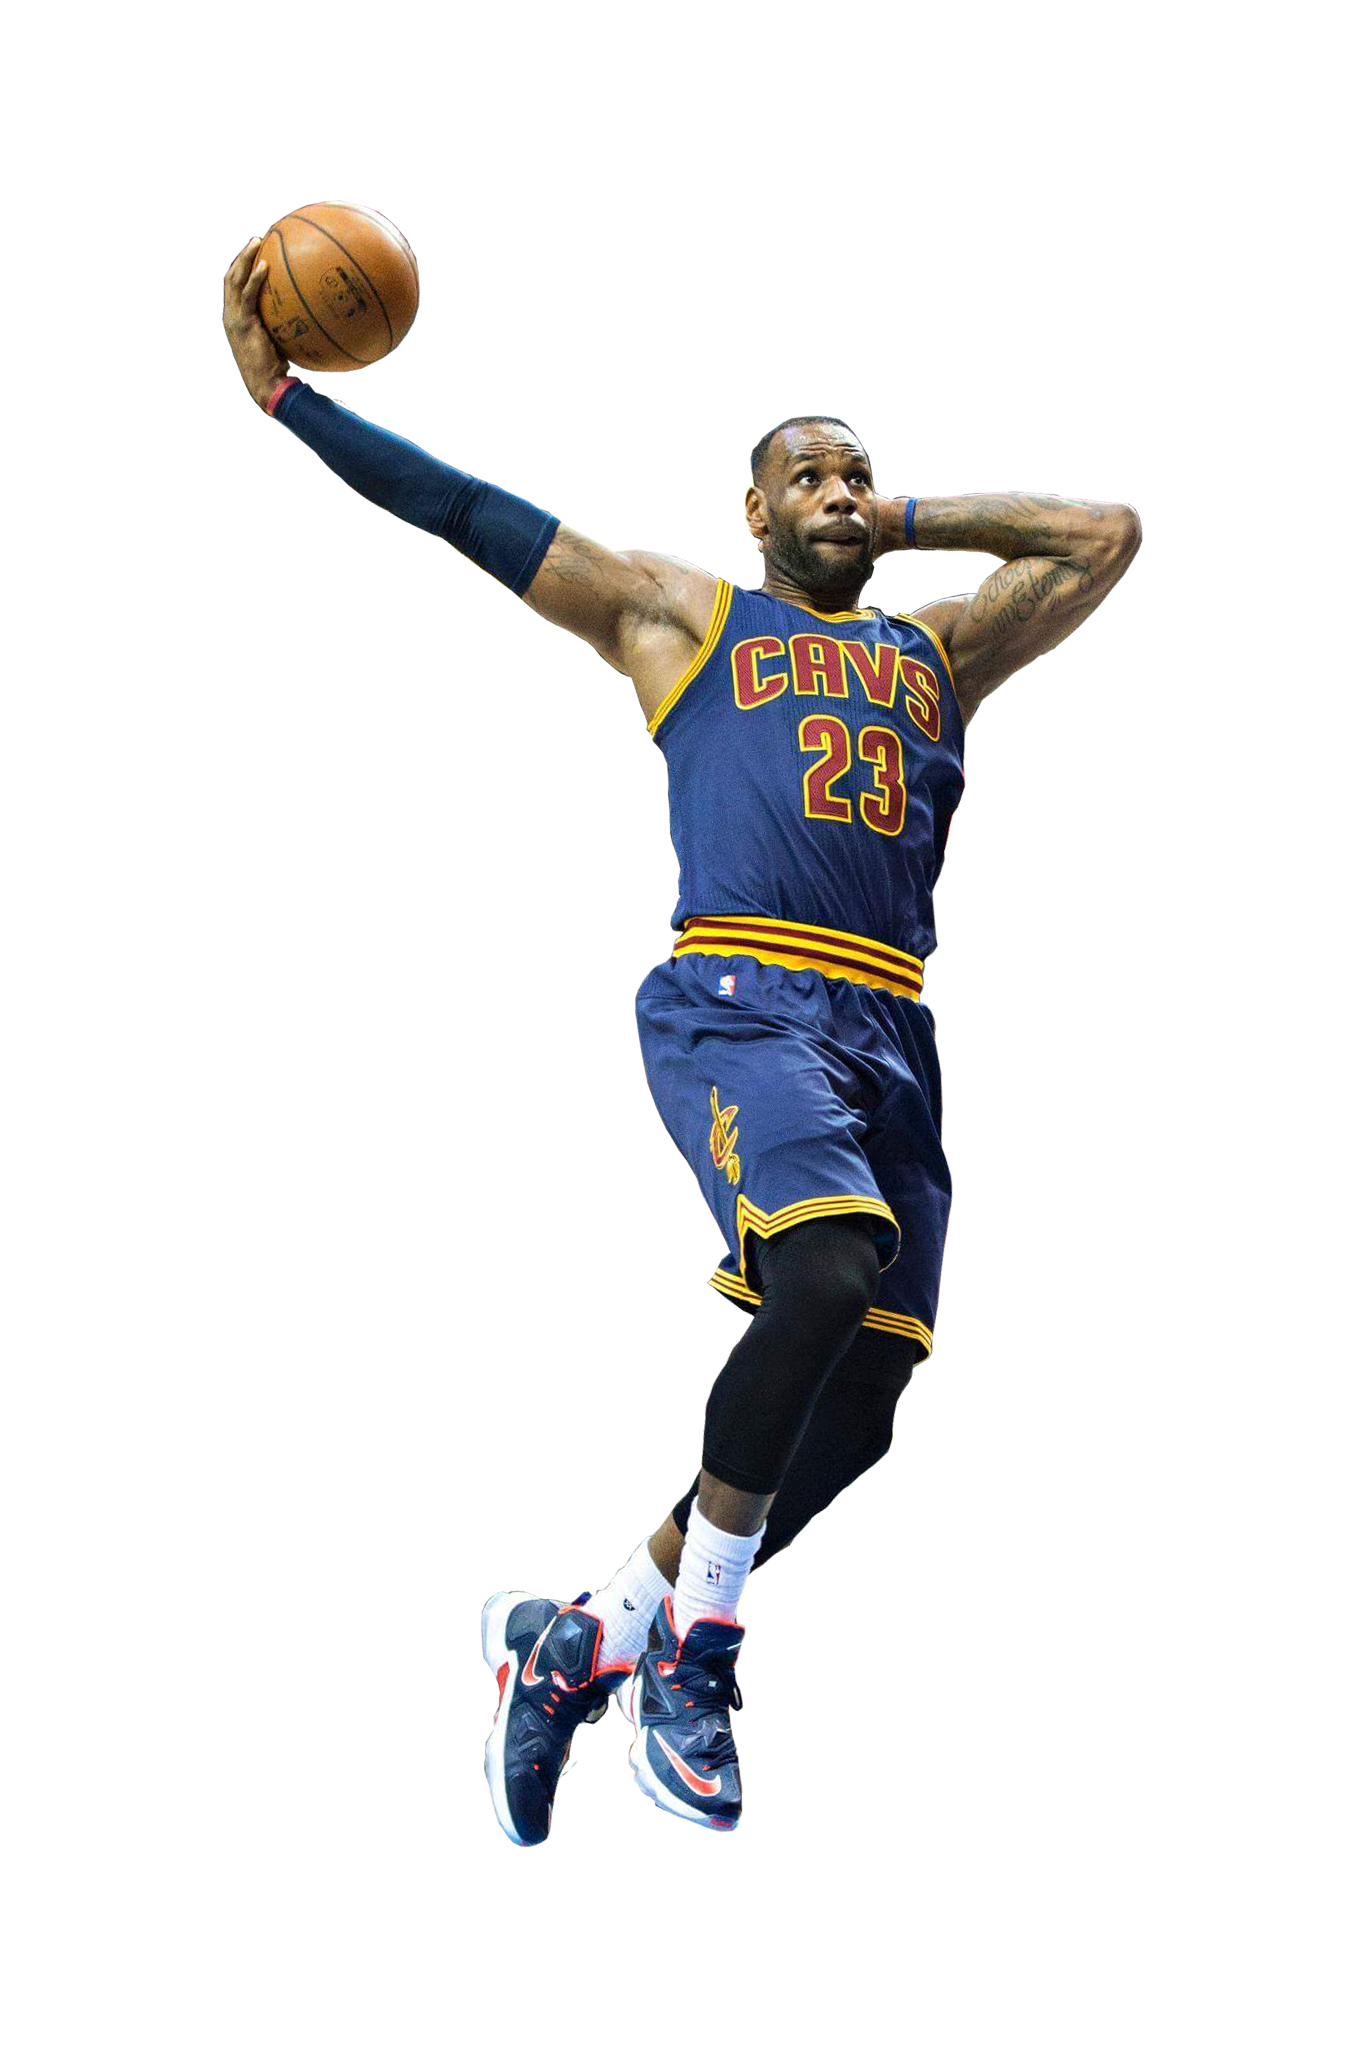 Playoffs Cavaliers Sports Joint Cleveland Nba Uniform PNG Image